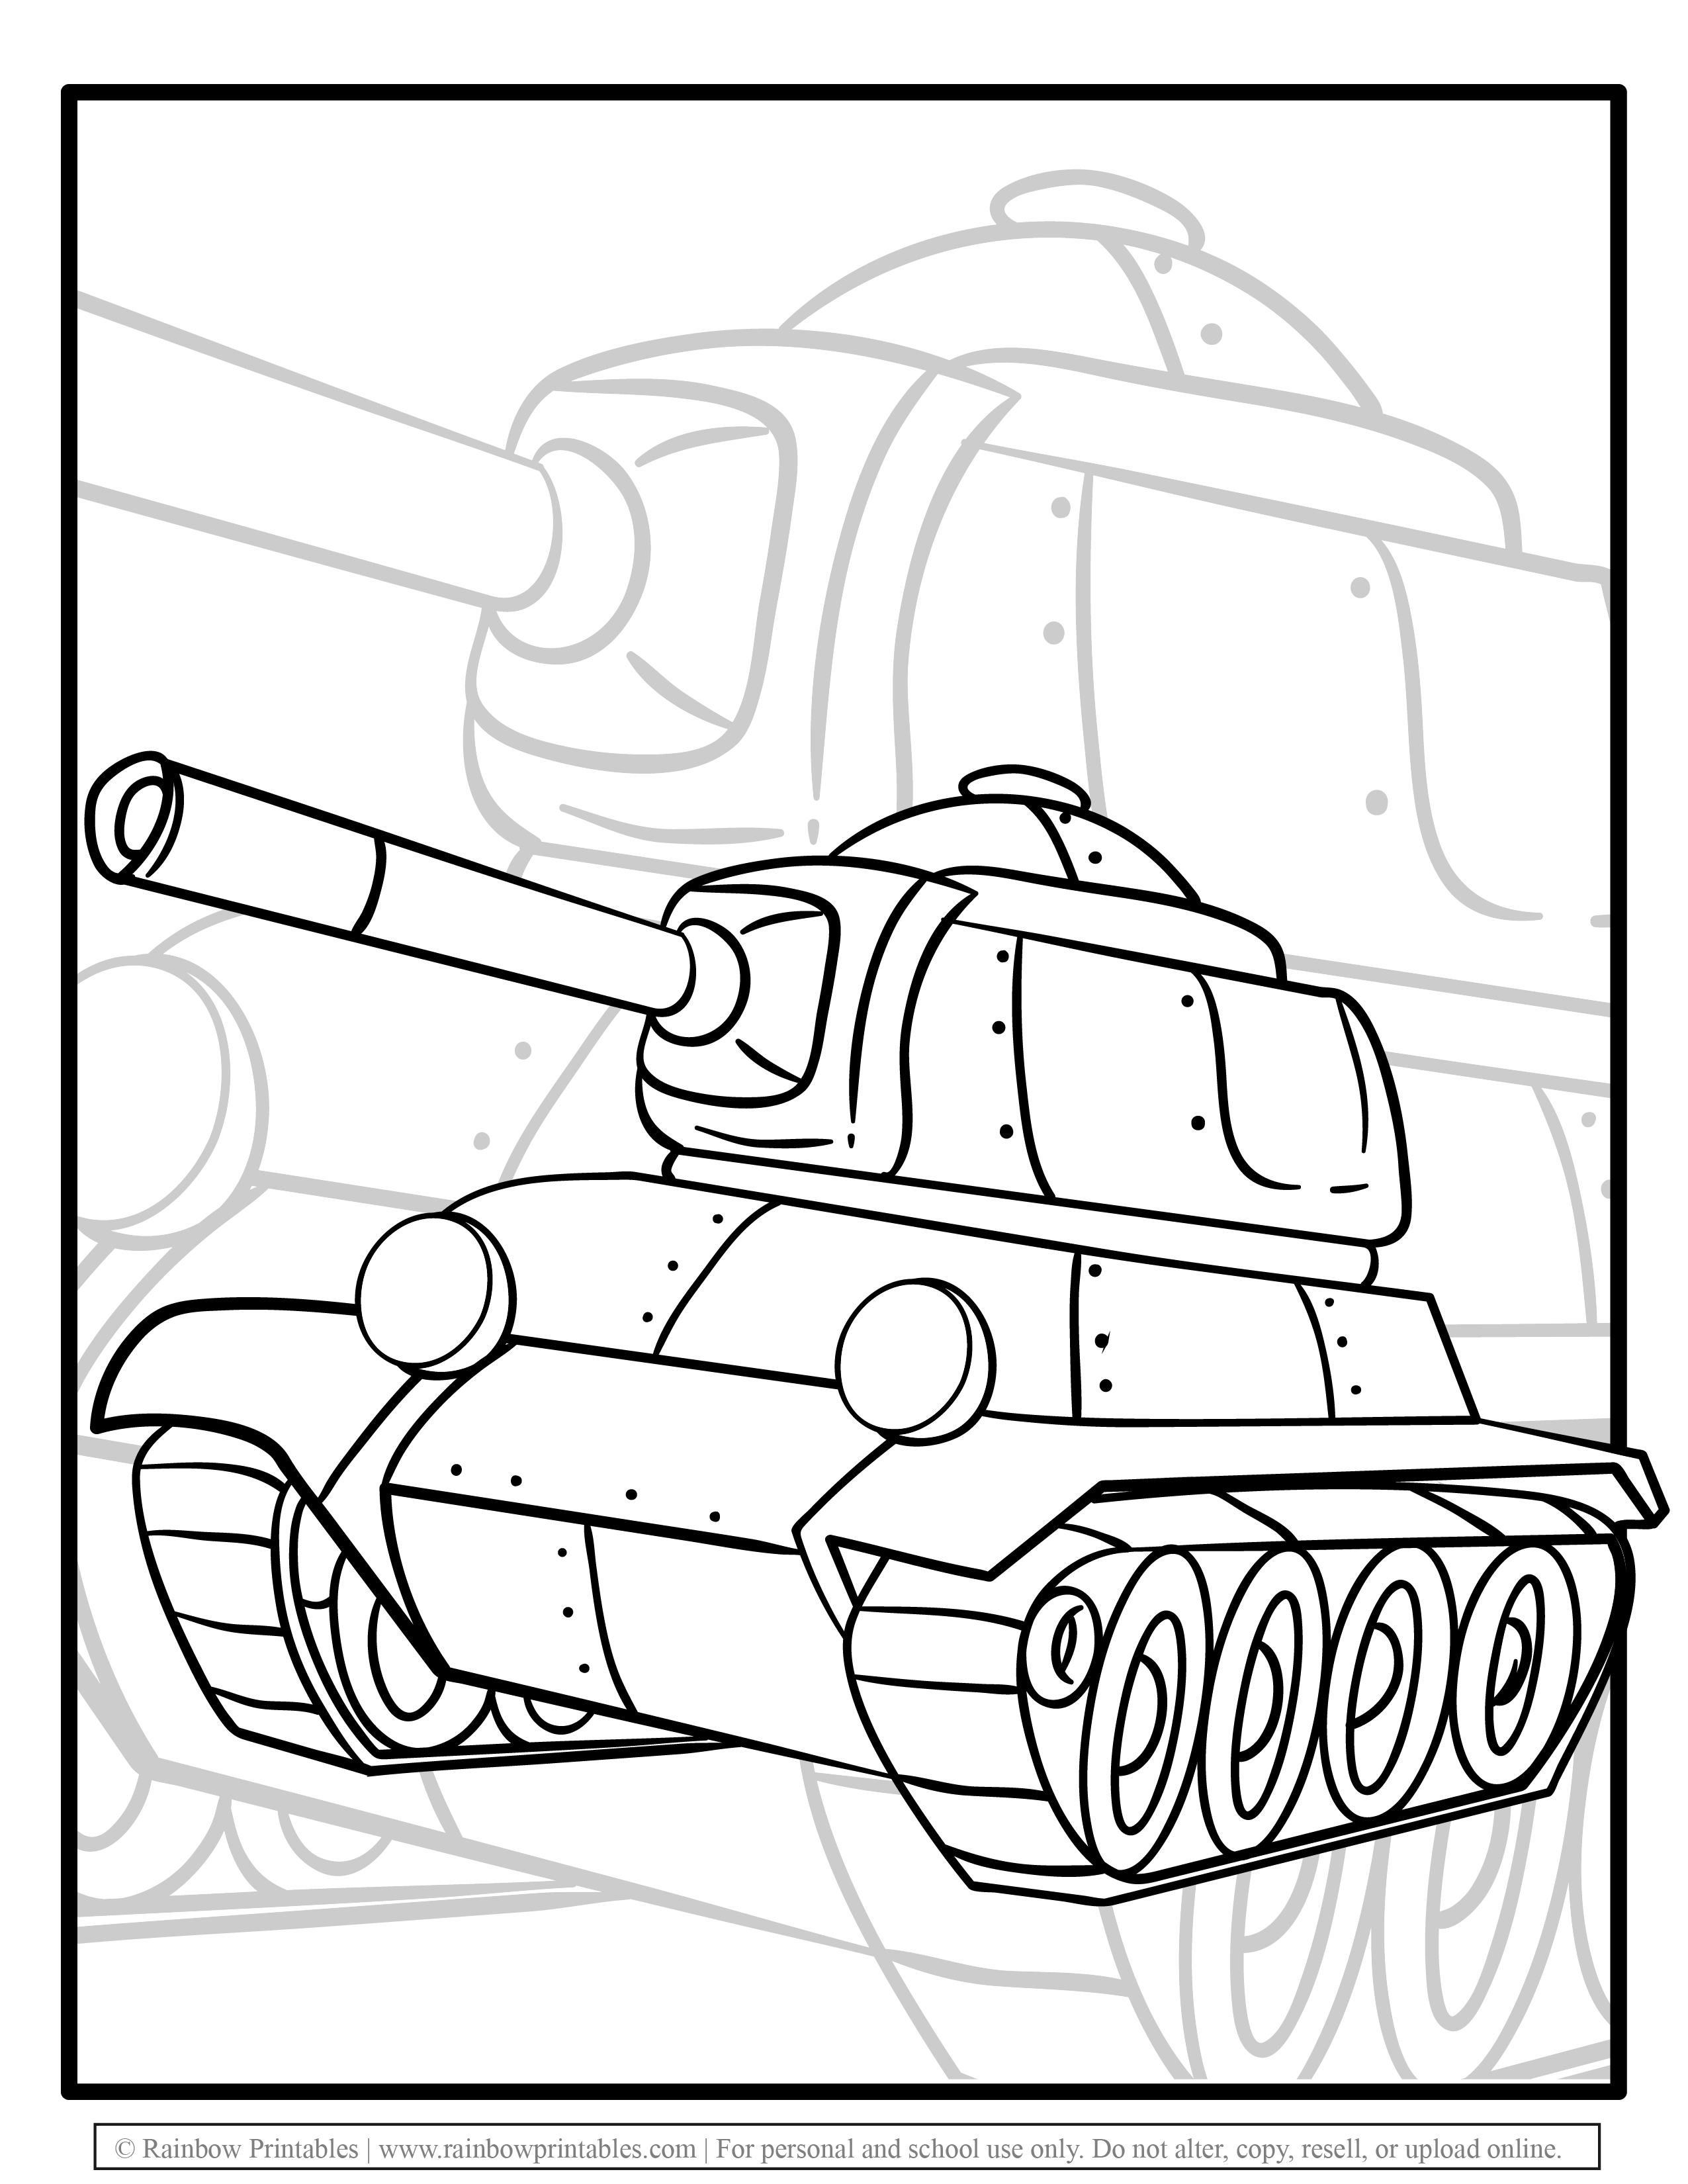 Free Coloring Pages for Kids Drawing Activities Line Art Illustration Military Grade TANK ARMY MACHINE